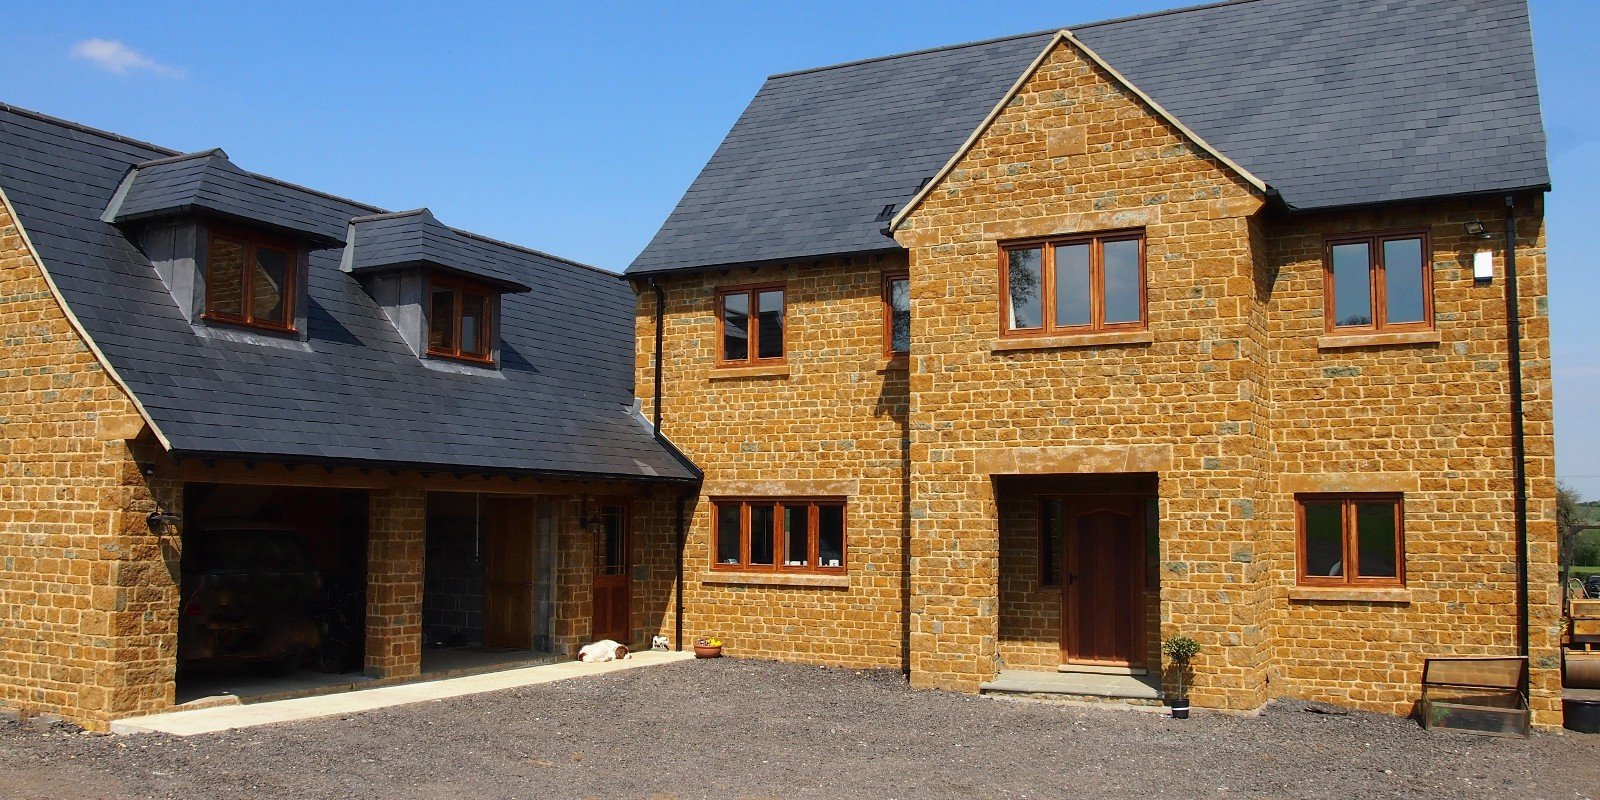 New Build In Bradfrord, West Yorkshire